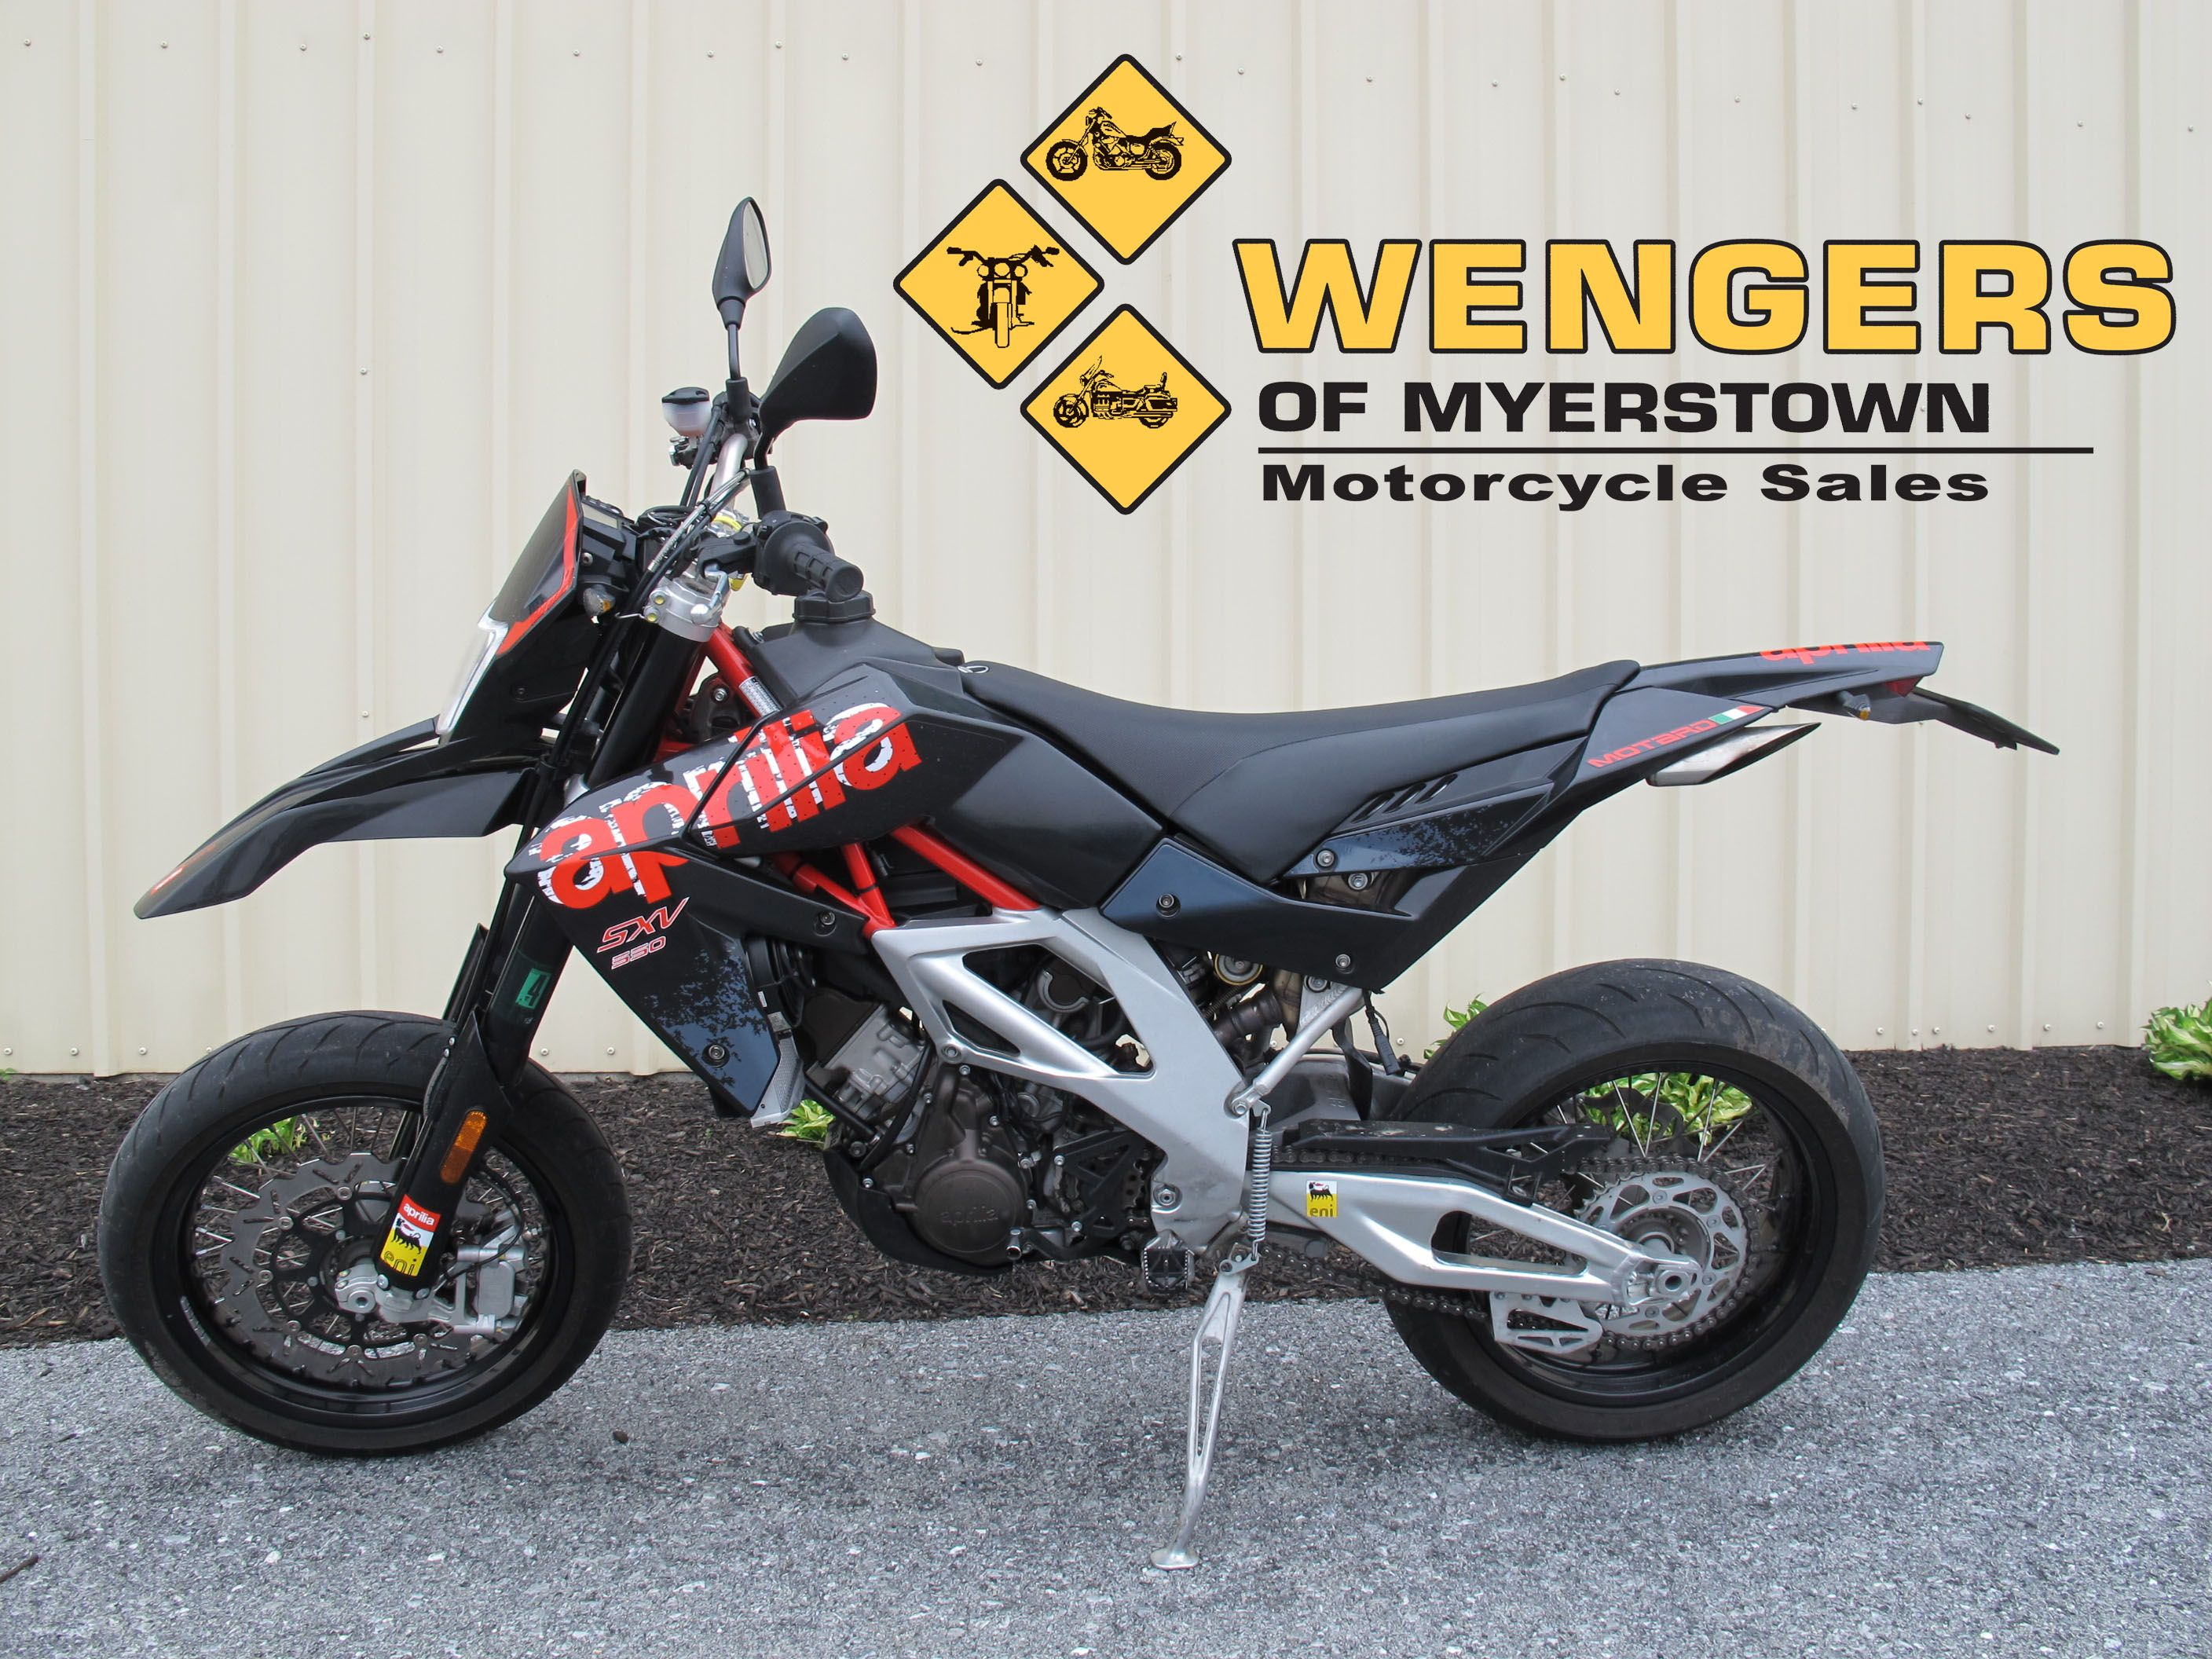 aprilia sxv 550 supermoto motorcycles for sale at wengers of myerstown sold bikes for sale. Black Bedroom Furniture Sets. Home Design Ideas